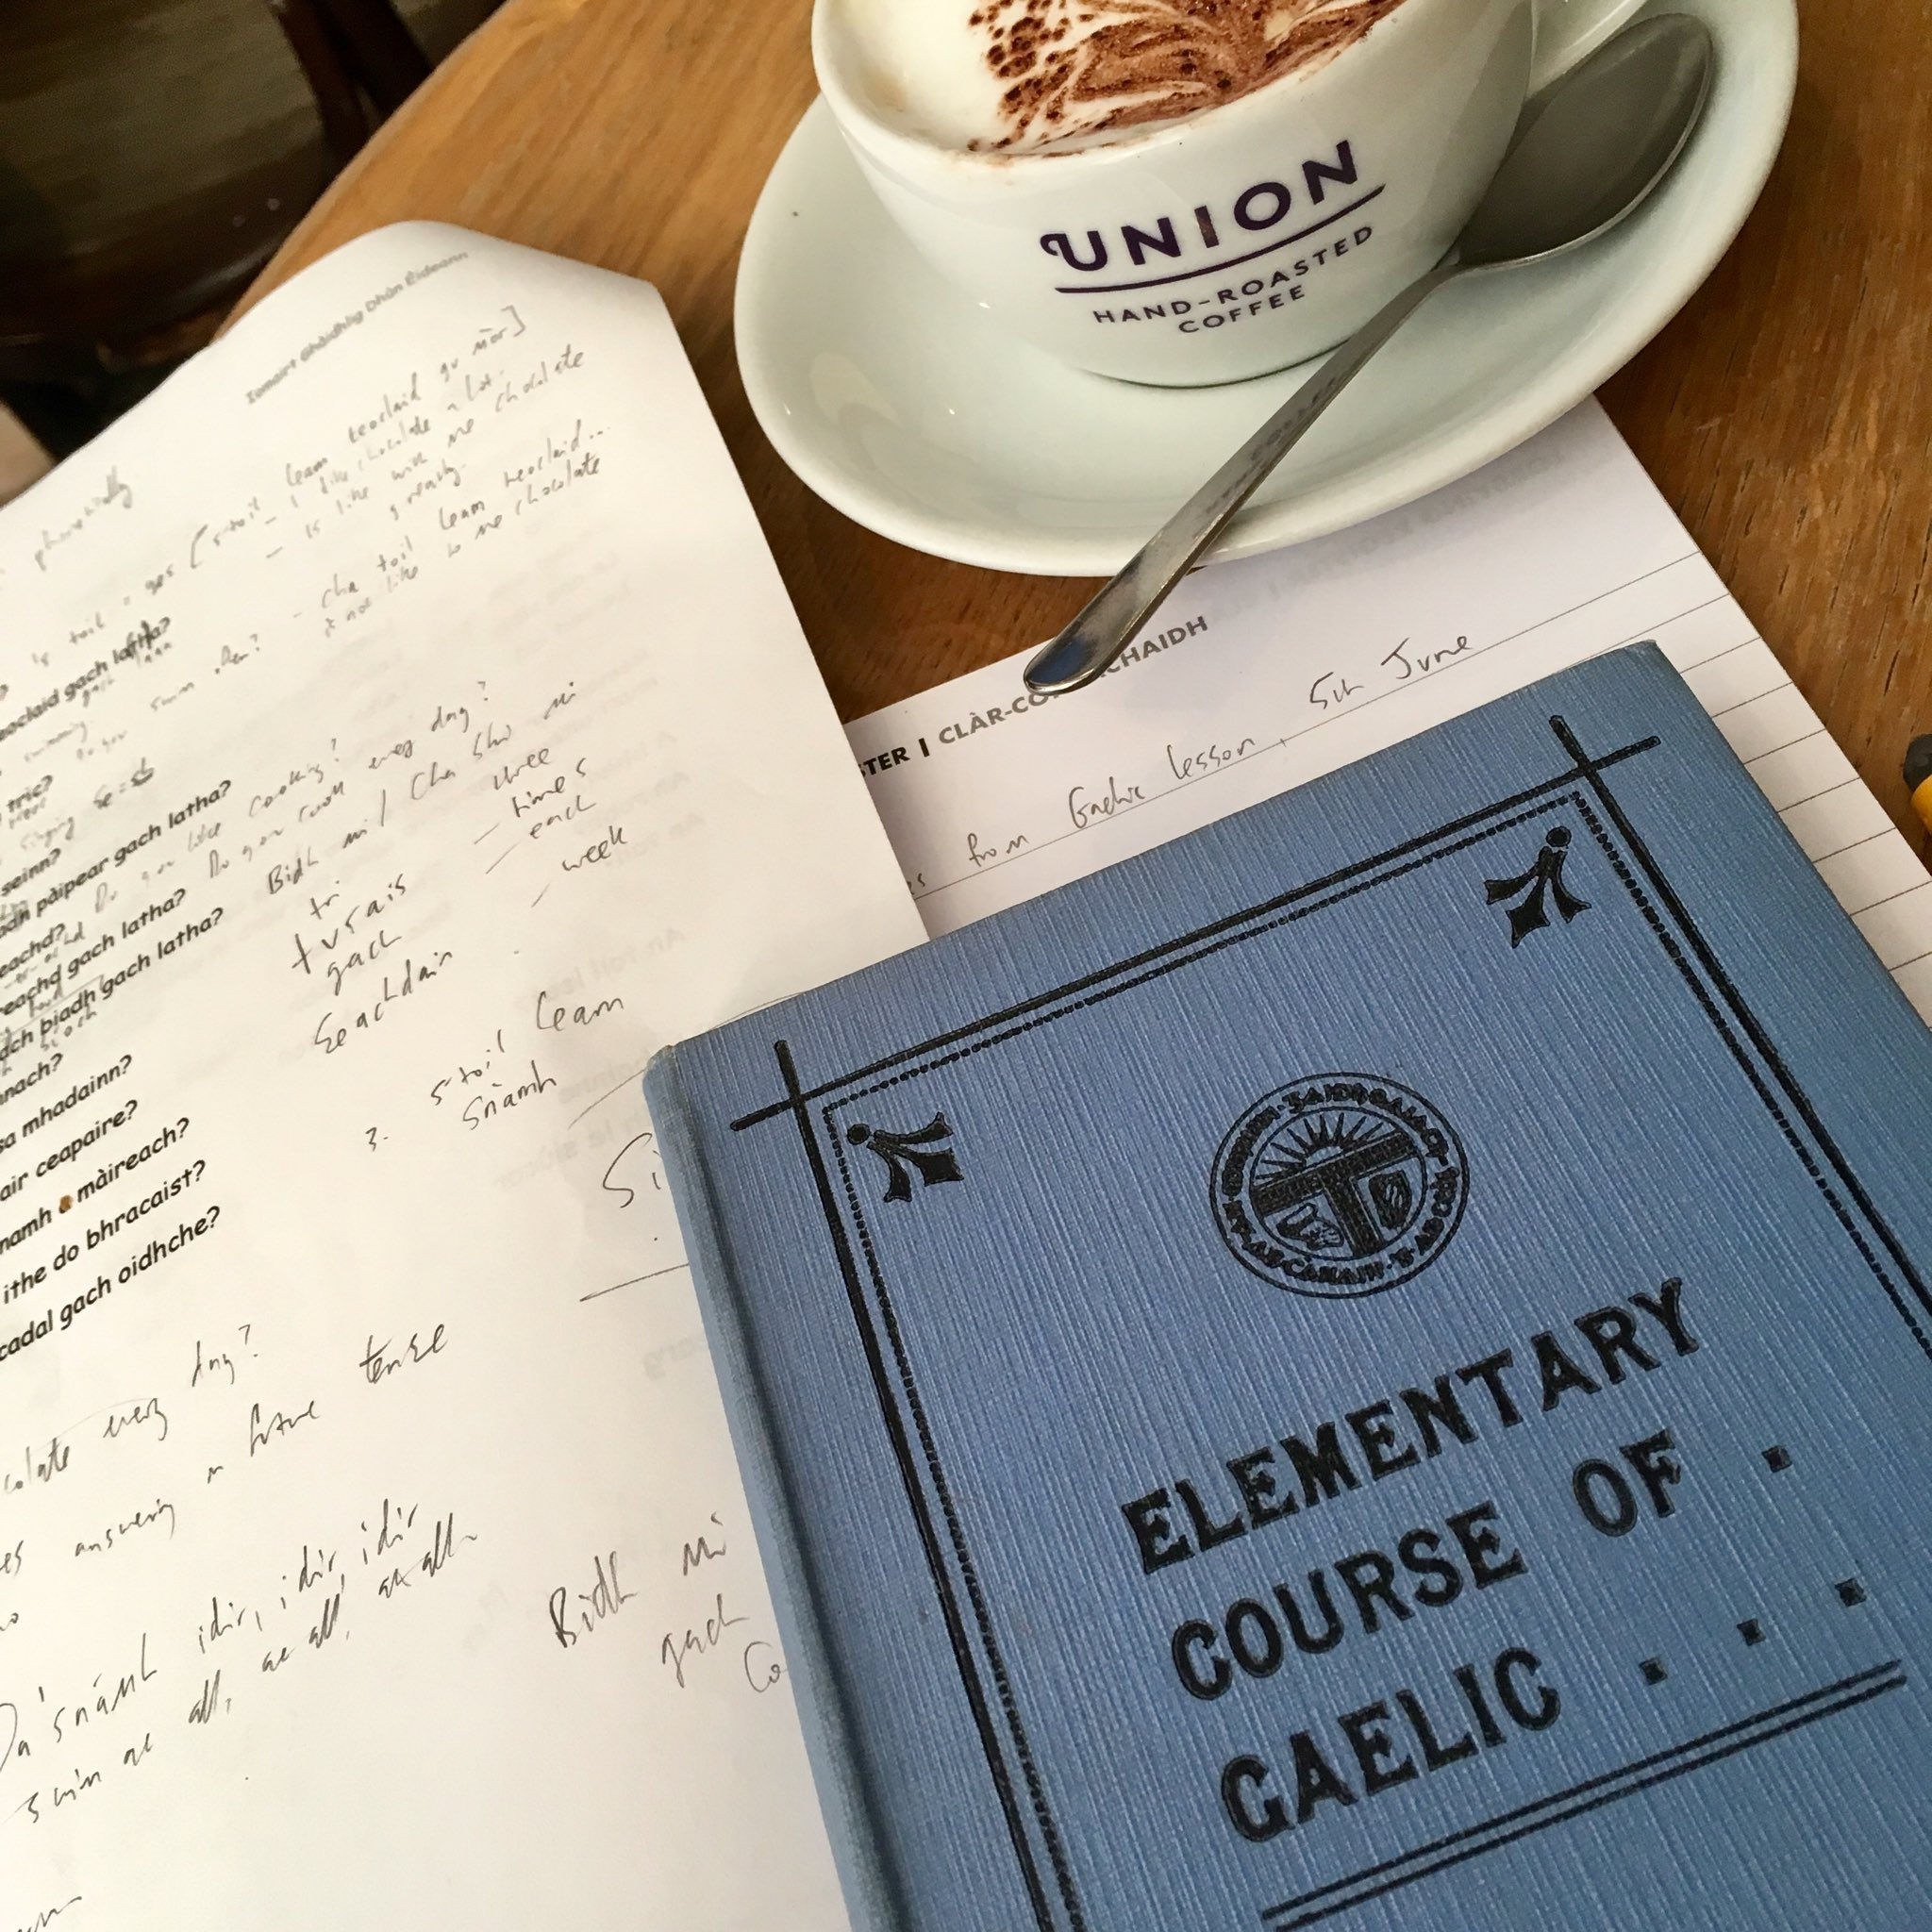 Ashley Douglas On Twitter Scrievin Up Ma Gaelic Notes Efter A In First Cl At Stgileshighkirk This Morn S Toil Leam Cofaidh Agus Gáidhlig